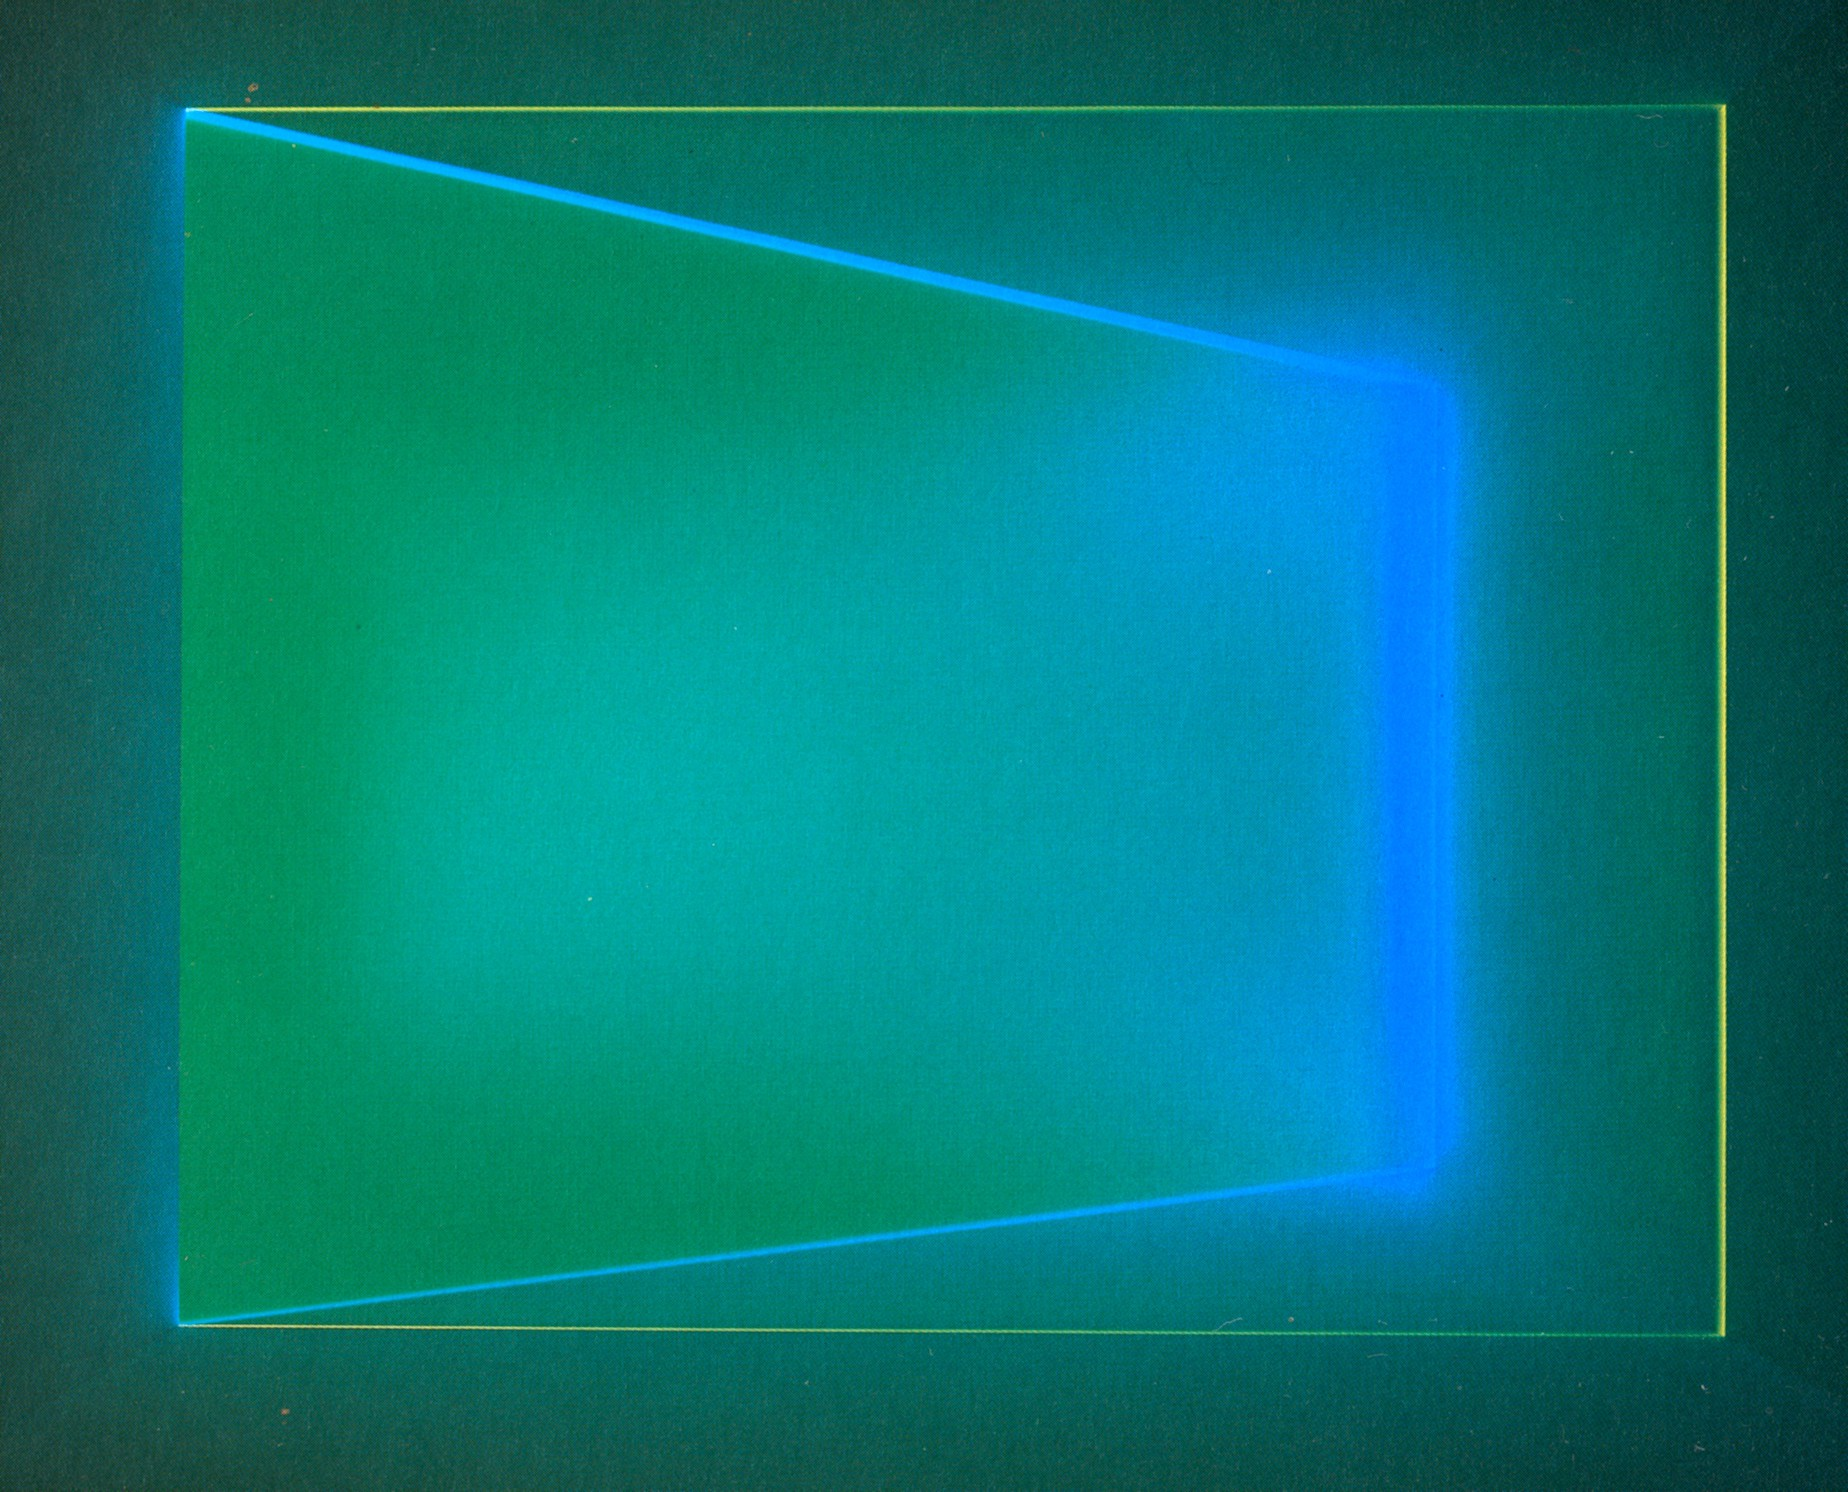 James Turrell, Wedgework III, 1969